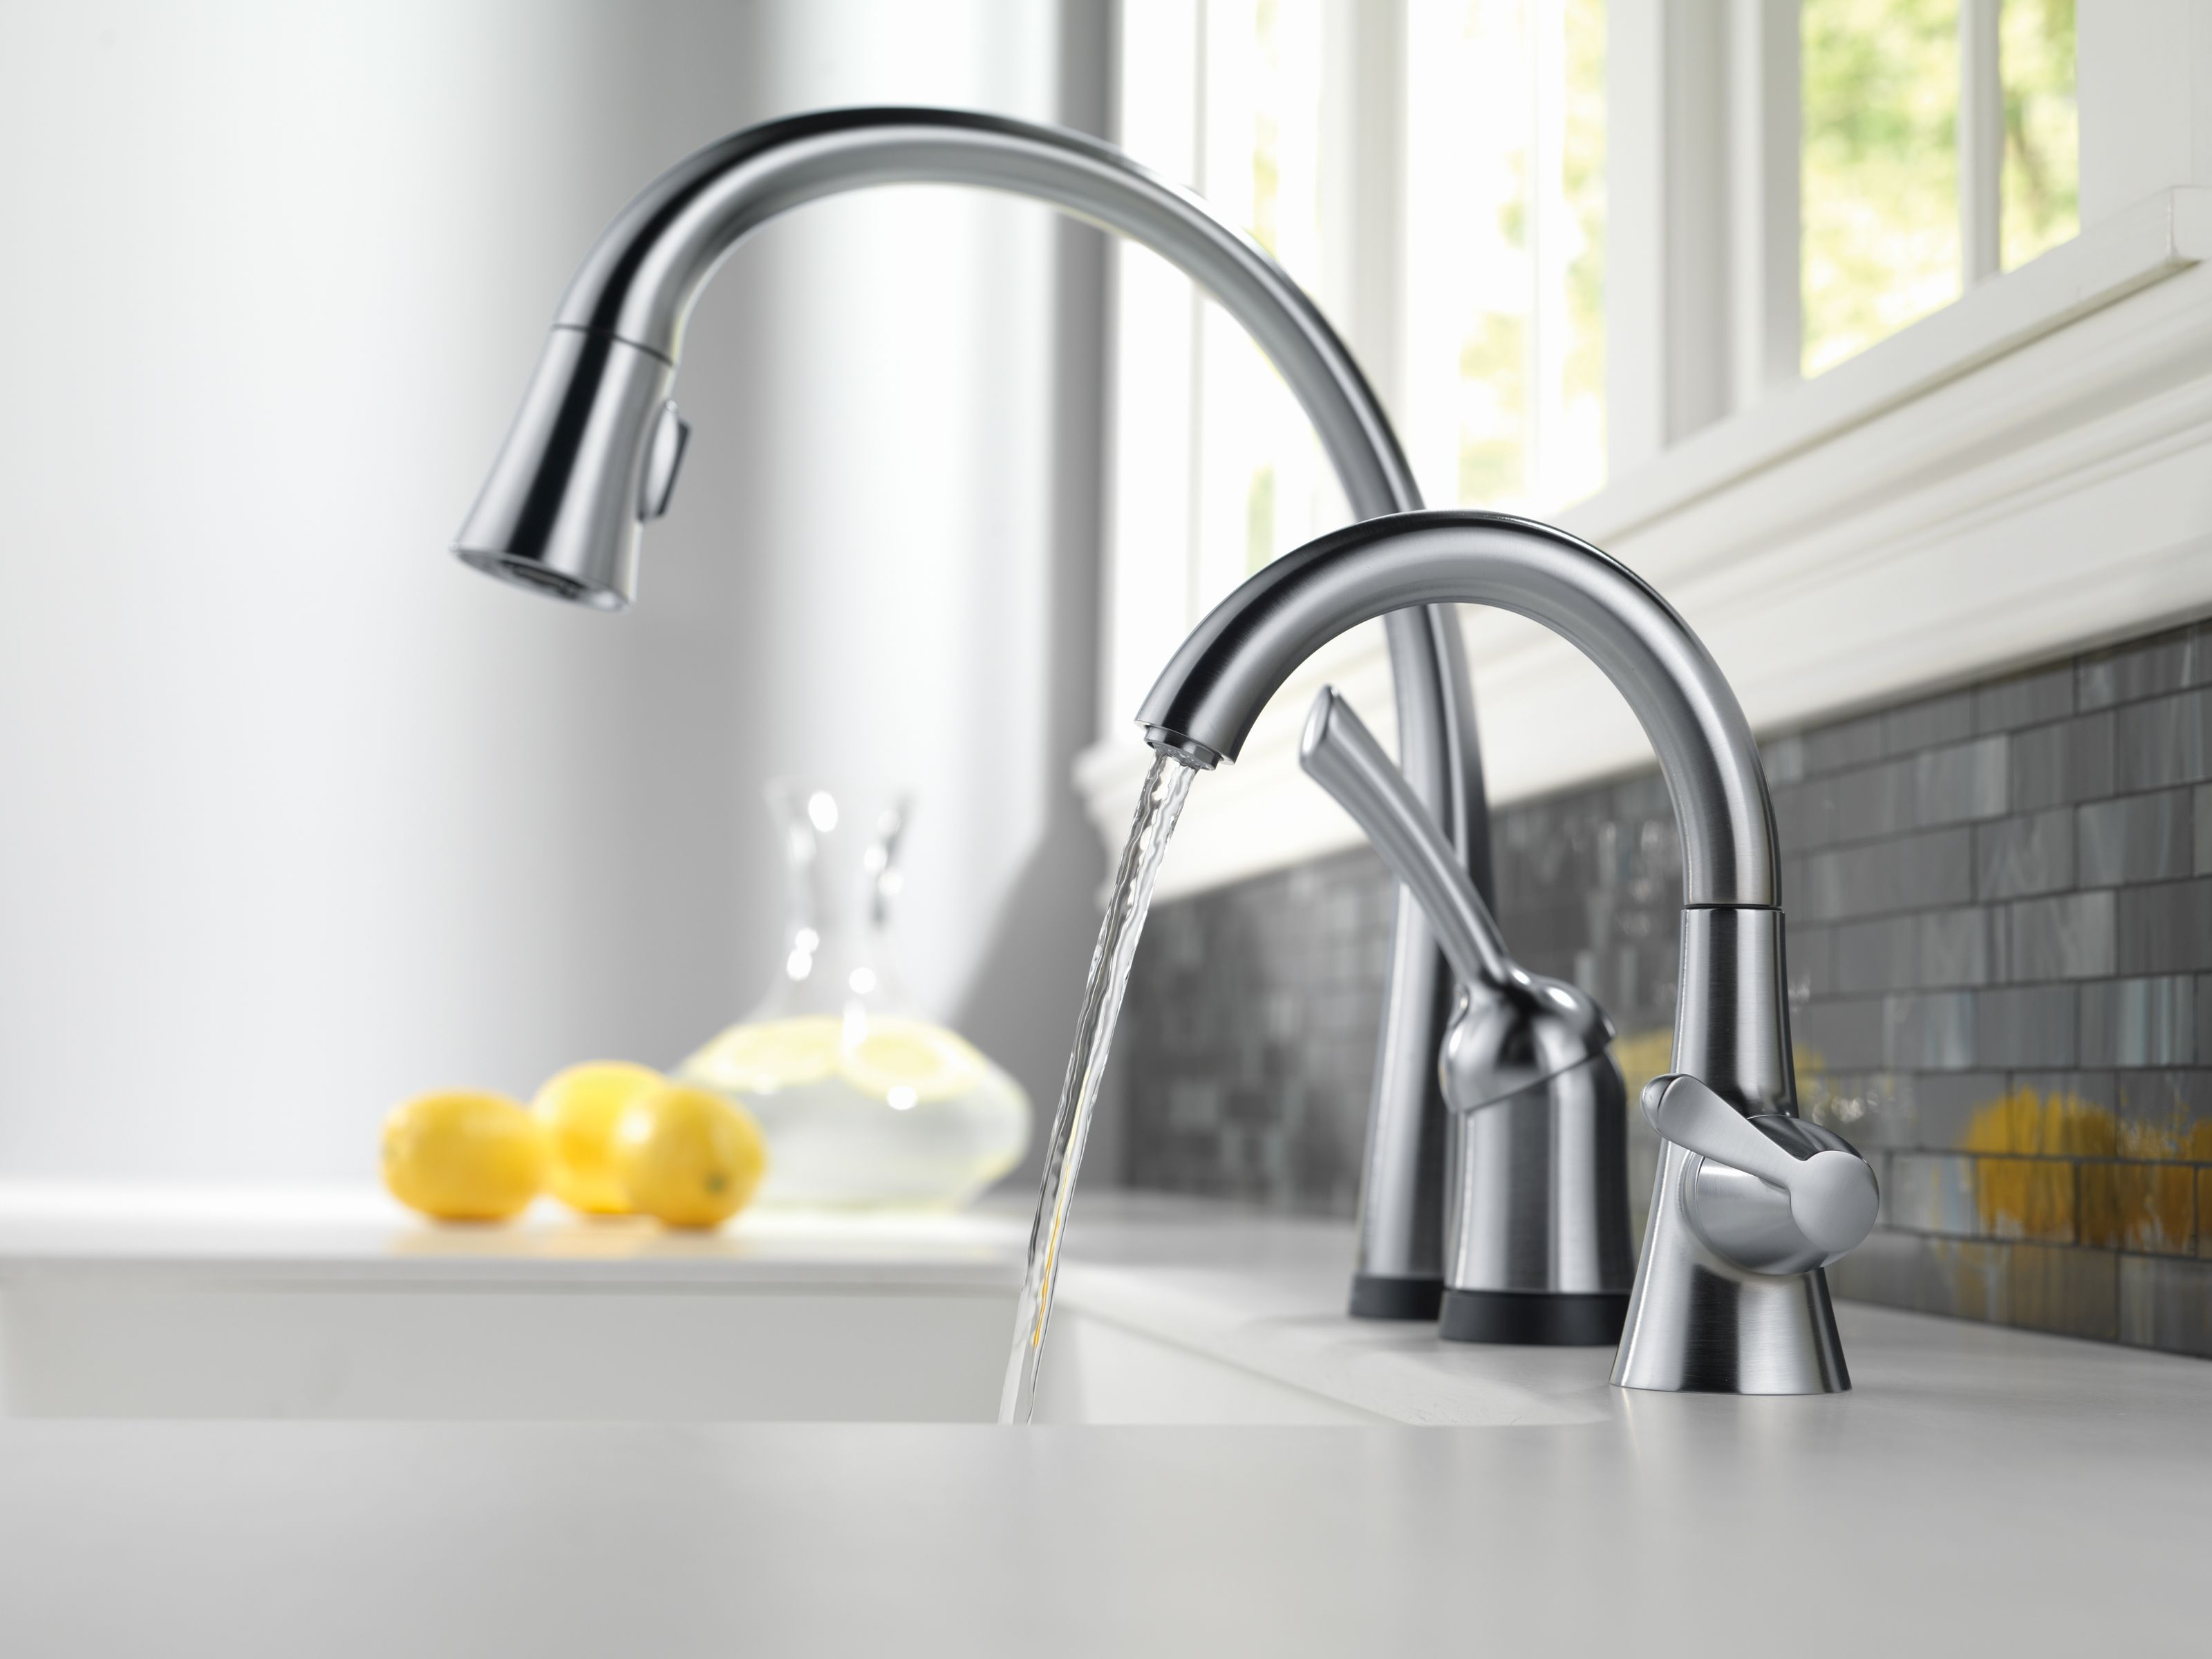 moen beverage faucet arc modern dp sip spot one ccfb view faucets larger stainless handle high